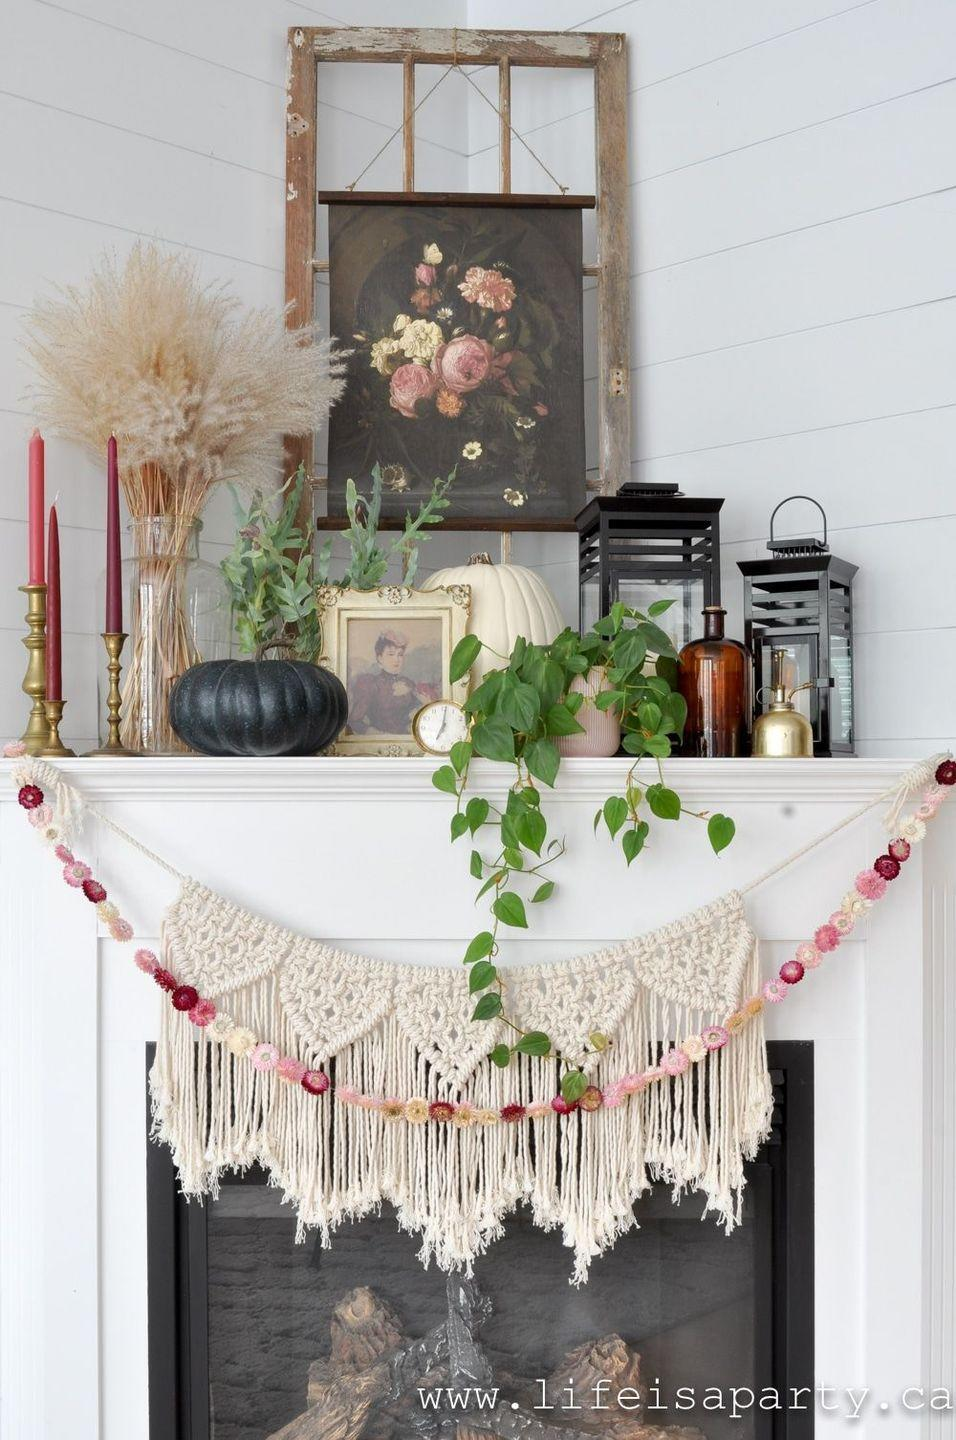 """<p>This tutorial will show you how to take a free image from an art collection and turn it into a fall-ready masterpiece made for your mantel.</p><p><strong>Get the tutorial at <a href=""""https://www.lifeisaparty.ca/boho-fall-mantel-decor-ideas/"""" rel=""""nofollow noopener"""" target=""""_blank"""" data-ylk=""""slk:Life Is a Party"""" class=""""link rapid-noclick-resp"""">Life Is a Party</a>.</strong></p><p><a class=""""link rapid-noclick-resp"""" href=""""https://go.redirectingat.com?id=74968X1596630&url=https%3A%2F%2Fwww.walmart.com%2Fsearch%2F%3Fquery%3Dtwine&sref=https%3A%2F%2Fwww.thepioneerwoman.com%2Fhome-lifestyle%2Fcrafts-diy%2Fg36891743%2Ffall-mantel-decorations%2F"""" rel=""""nofollow noopener"""" target=""""_blank"""" data-ylk=""""slk:SHOP TWINE"""">SHOP TWINE</a></p>"""